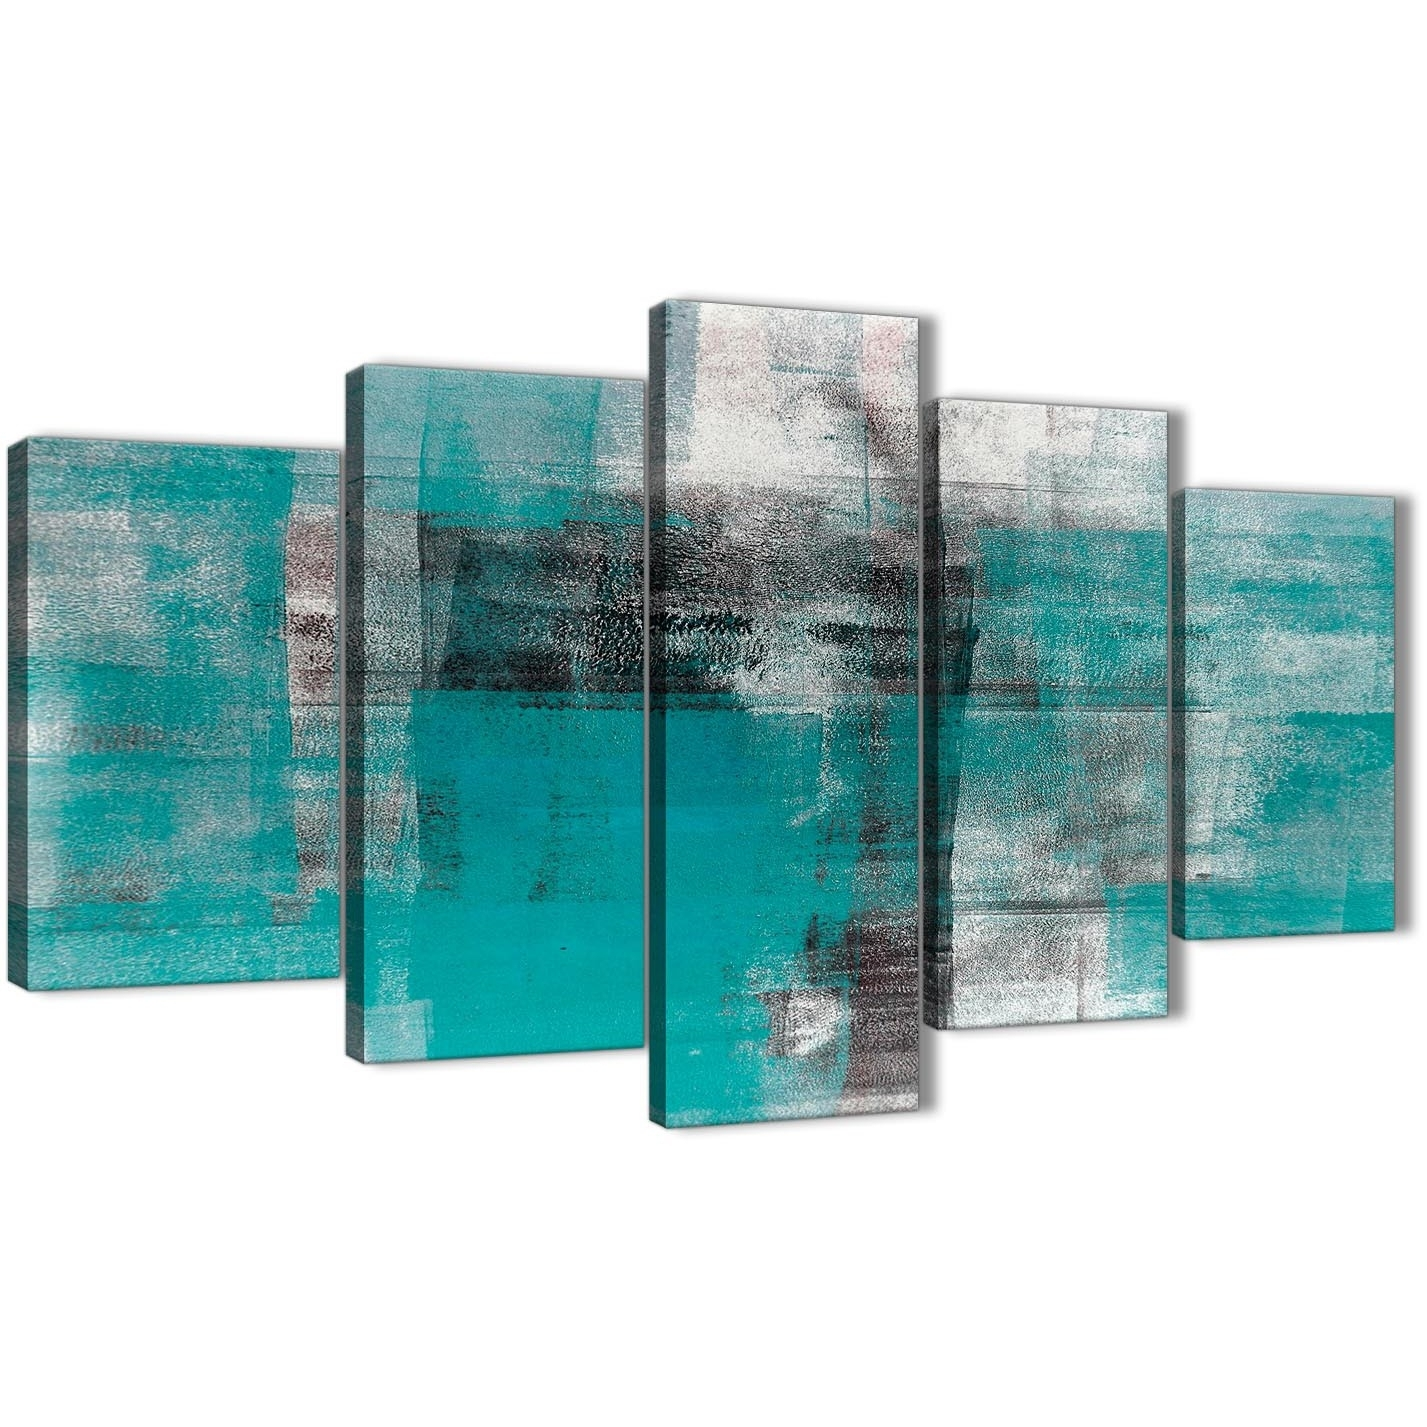 5 Part Teal Black White Painting Abstract Office Canvas Wall Art with Oversized Teal Canvas Wall Art (Image 1 of 20)